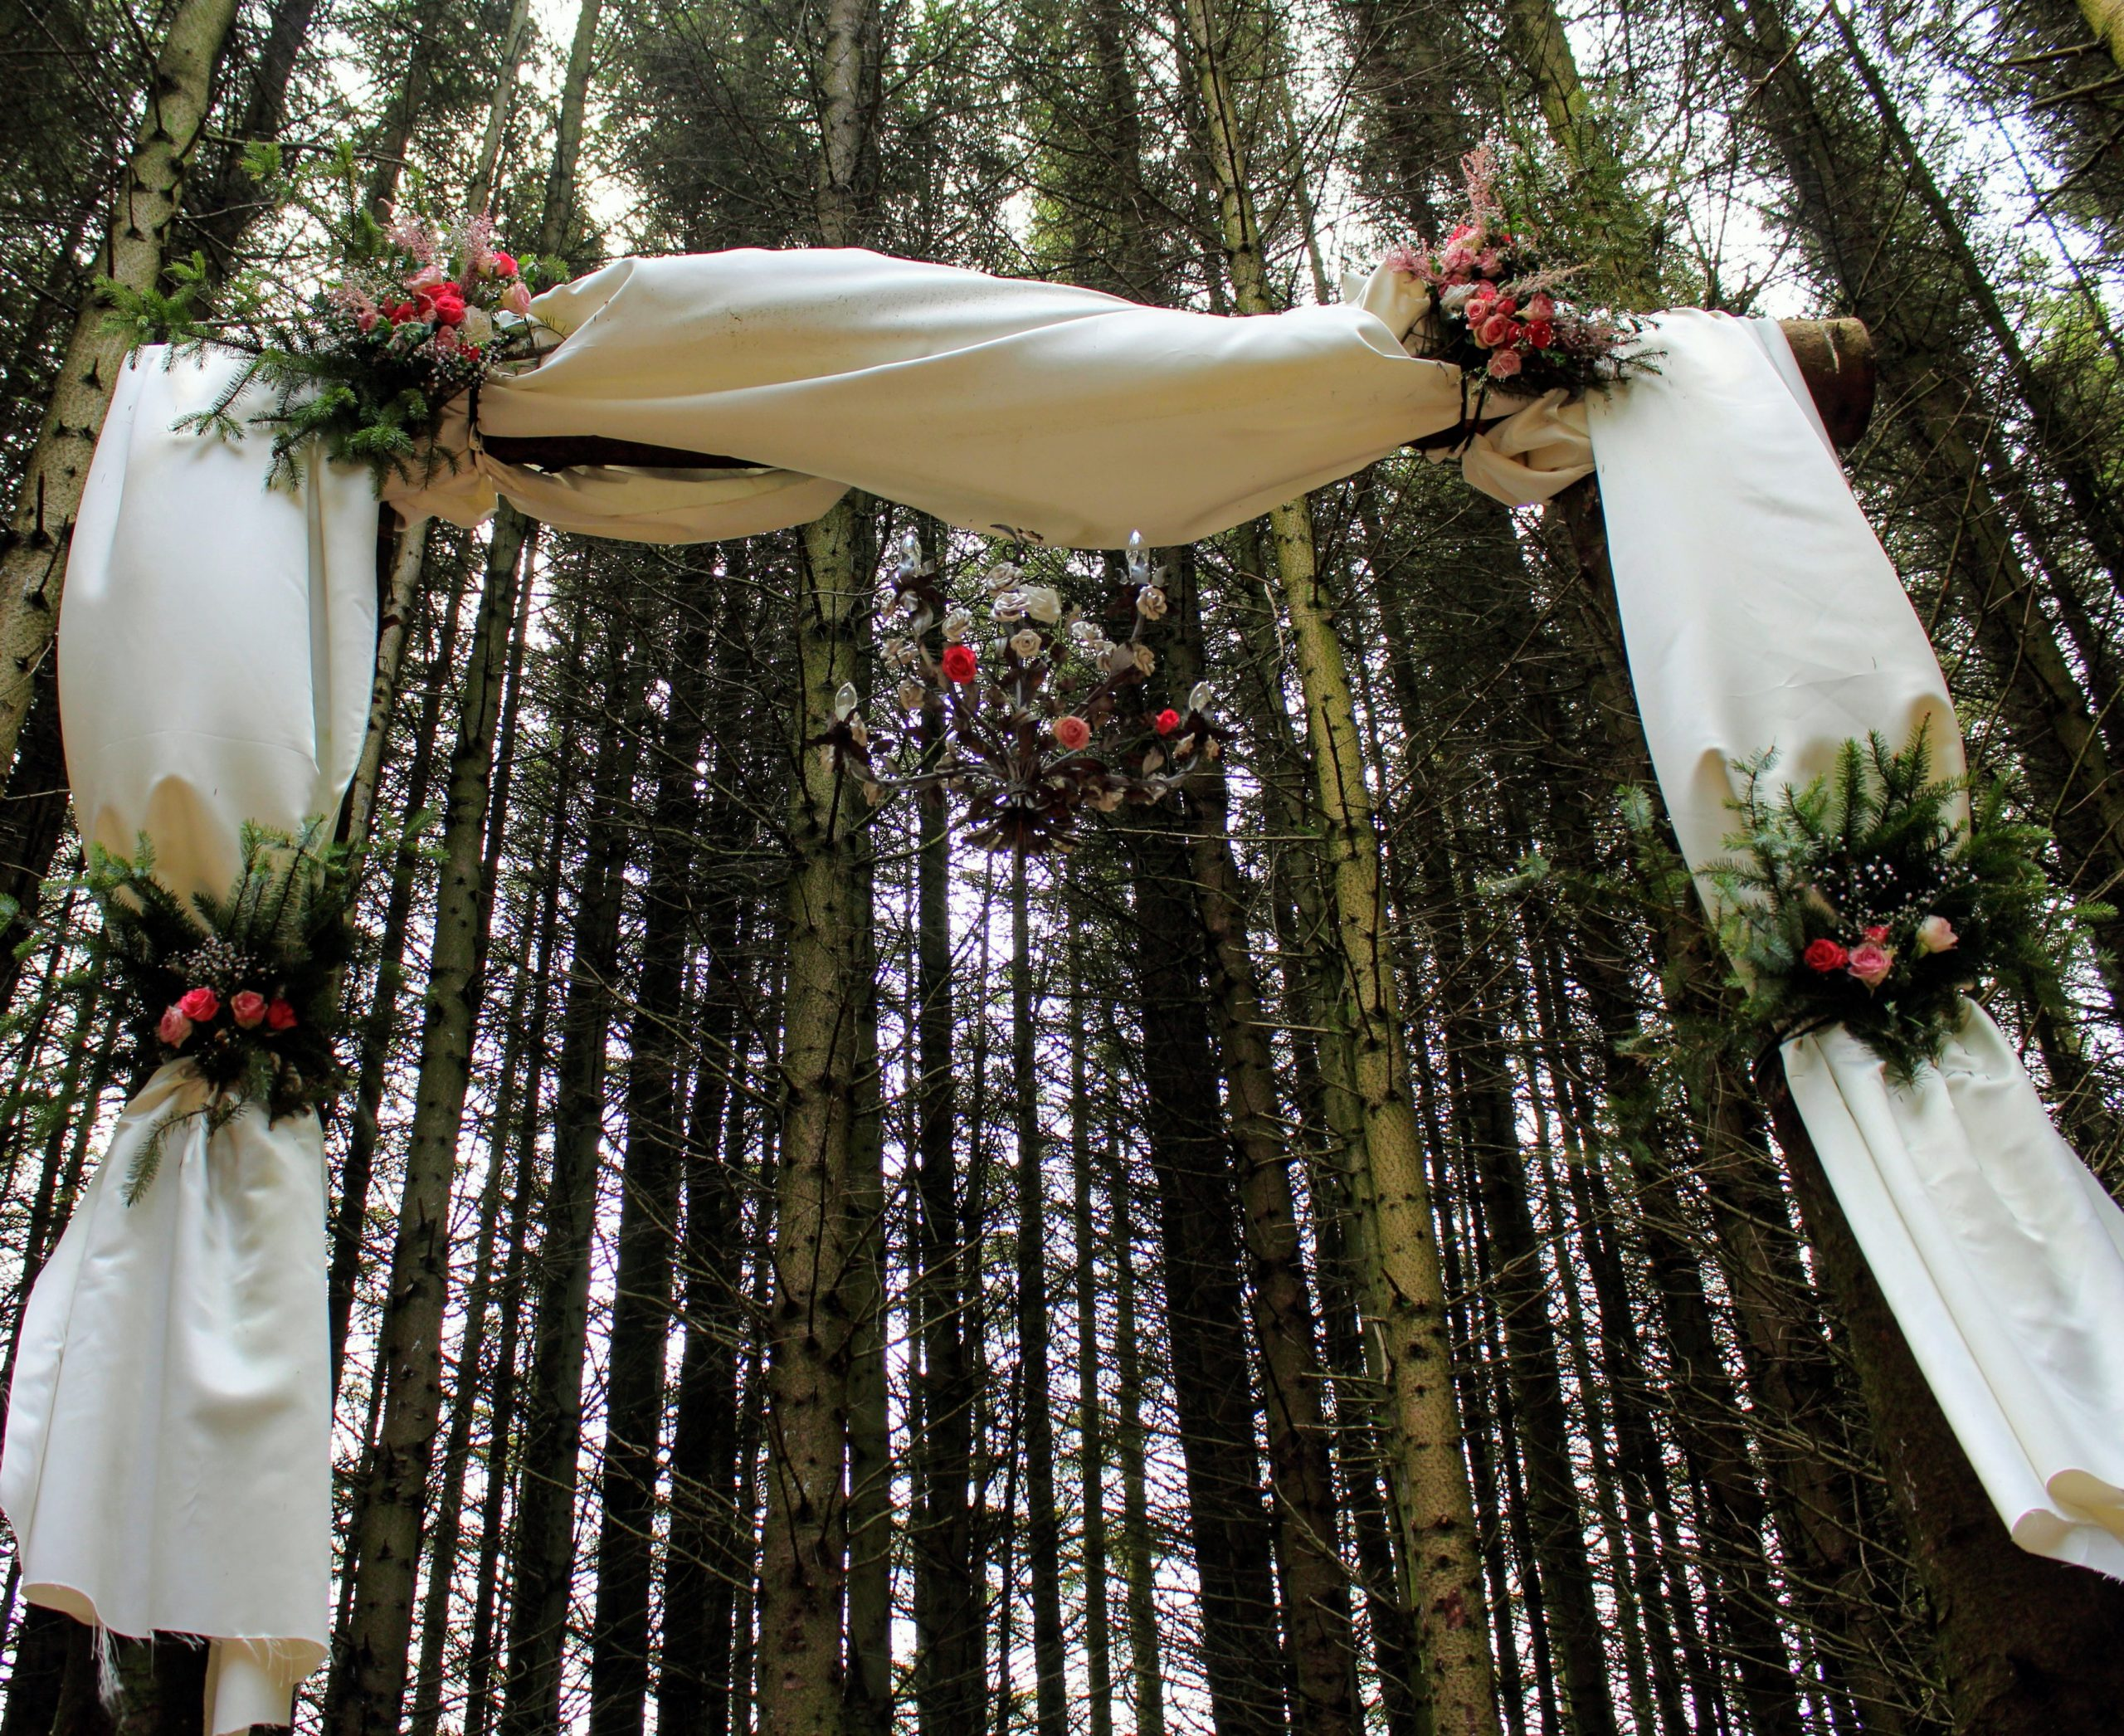 Stunning 3m tall solid log arch in our woodland wedding cathedral decorated with ivory satin drapes, greenery and pink roses